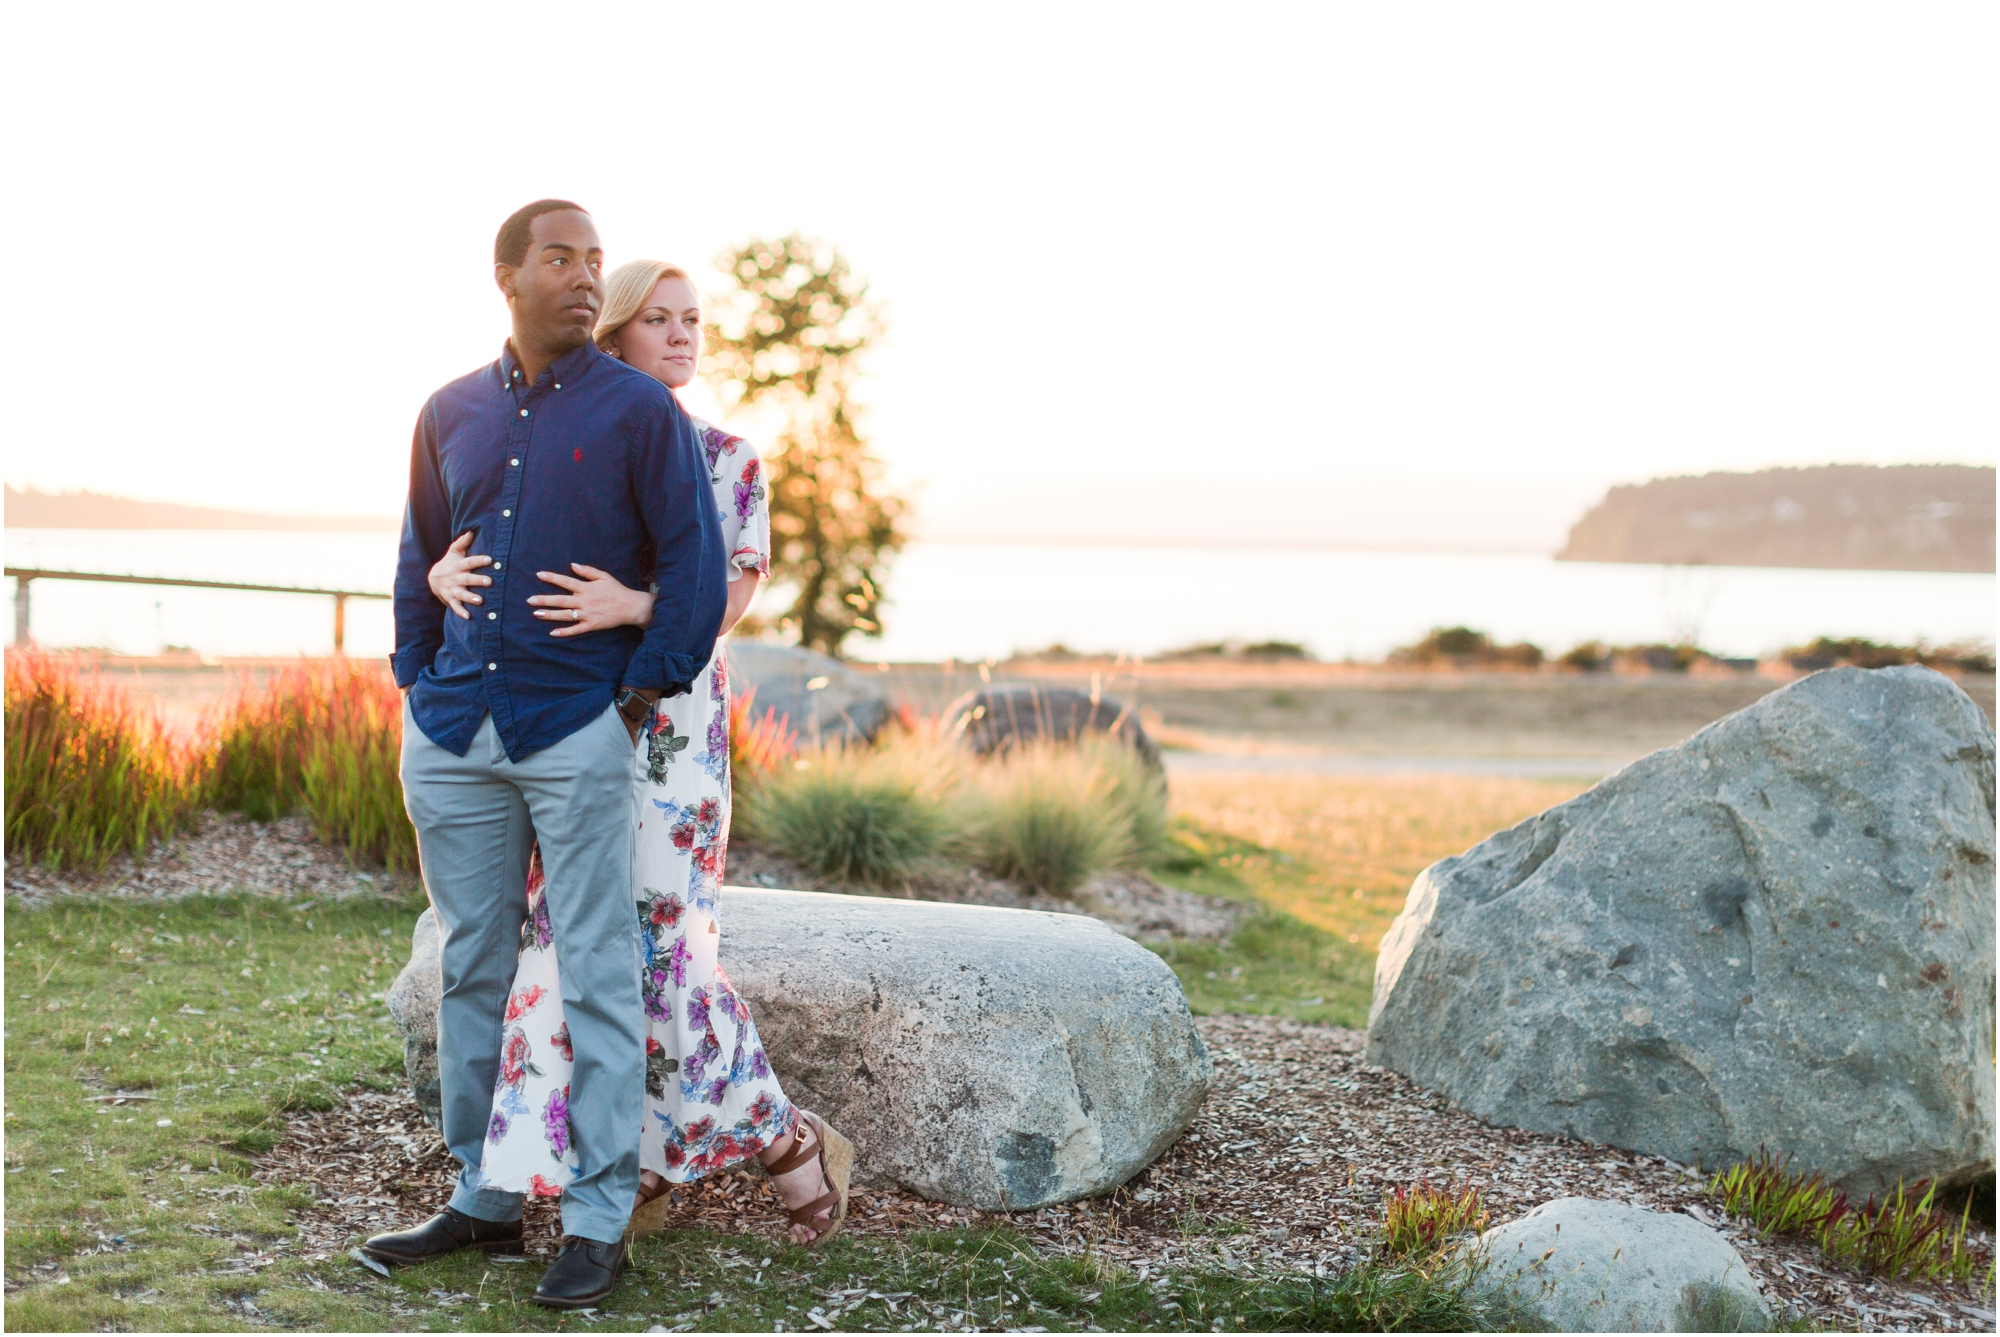 Chambers Bay engagement shoot in Tacoma, WA. Photos by Briana Calderon Photography based in the greater Seattle Area._1270.jpg